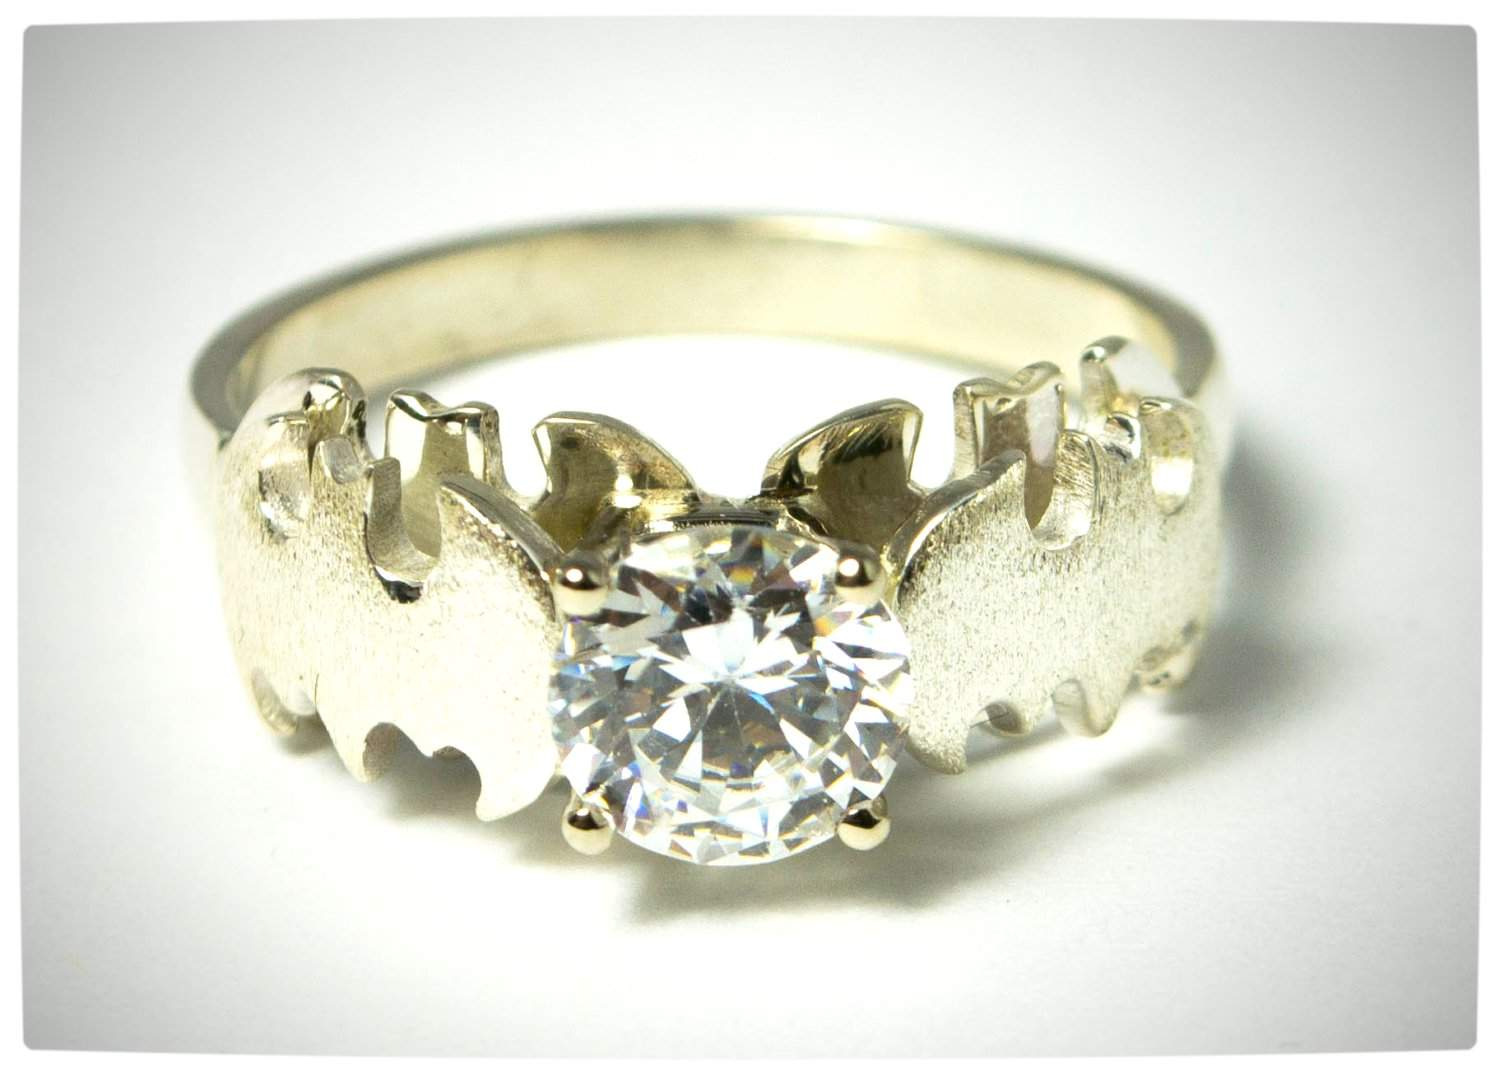 - Geek Chic - SUATMM - 10 Gorgeously Geektastic Engagement Rings ...